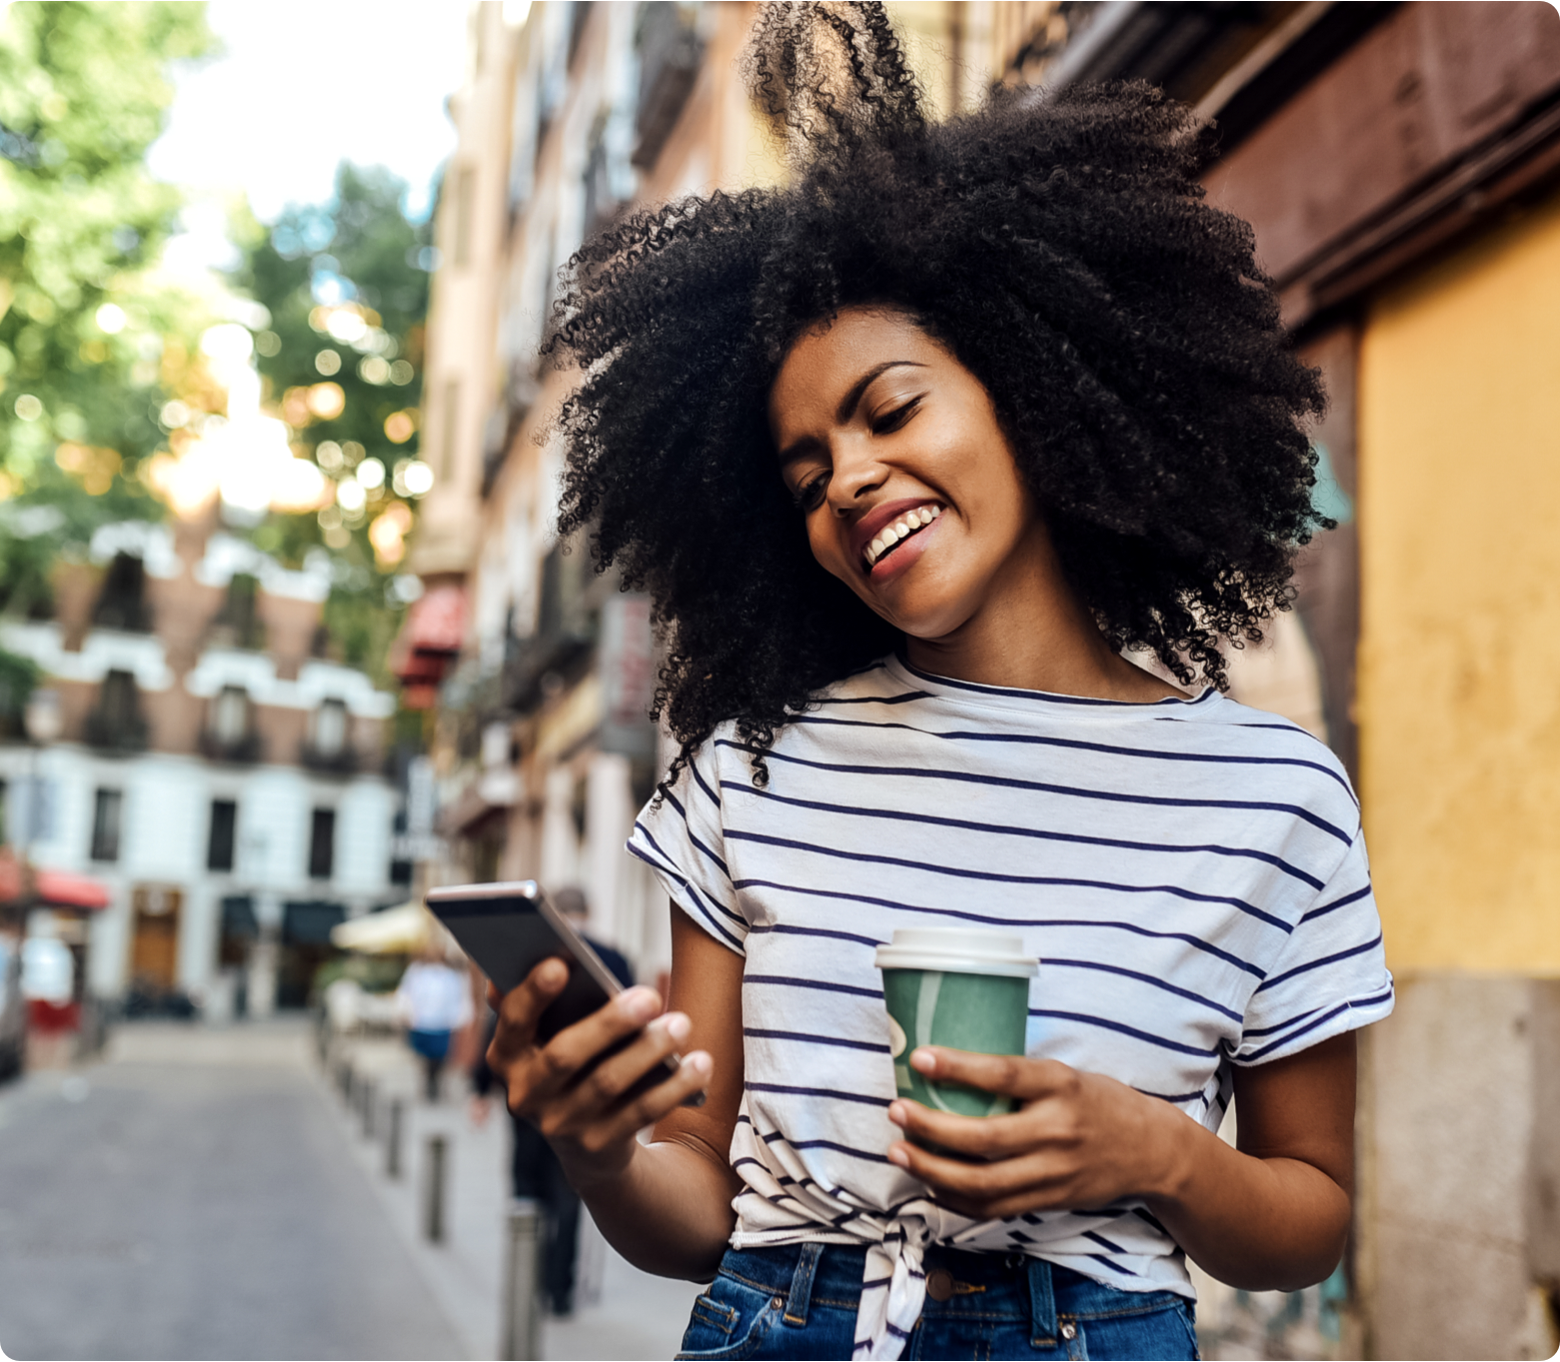 Picture of a girl smiling and looking at her phone